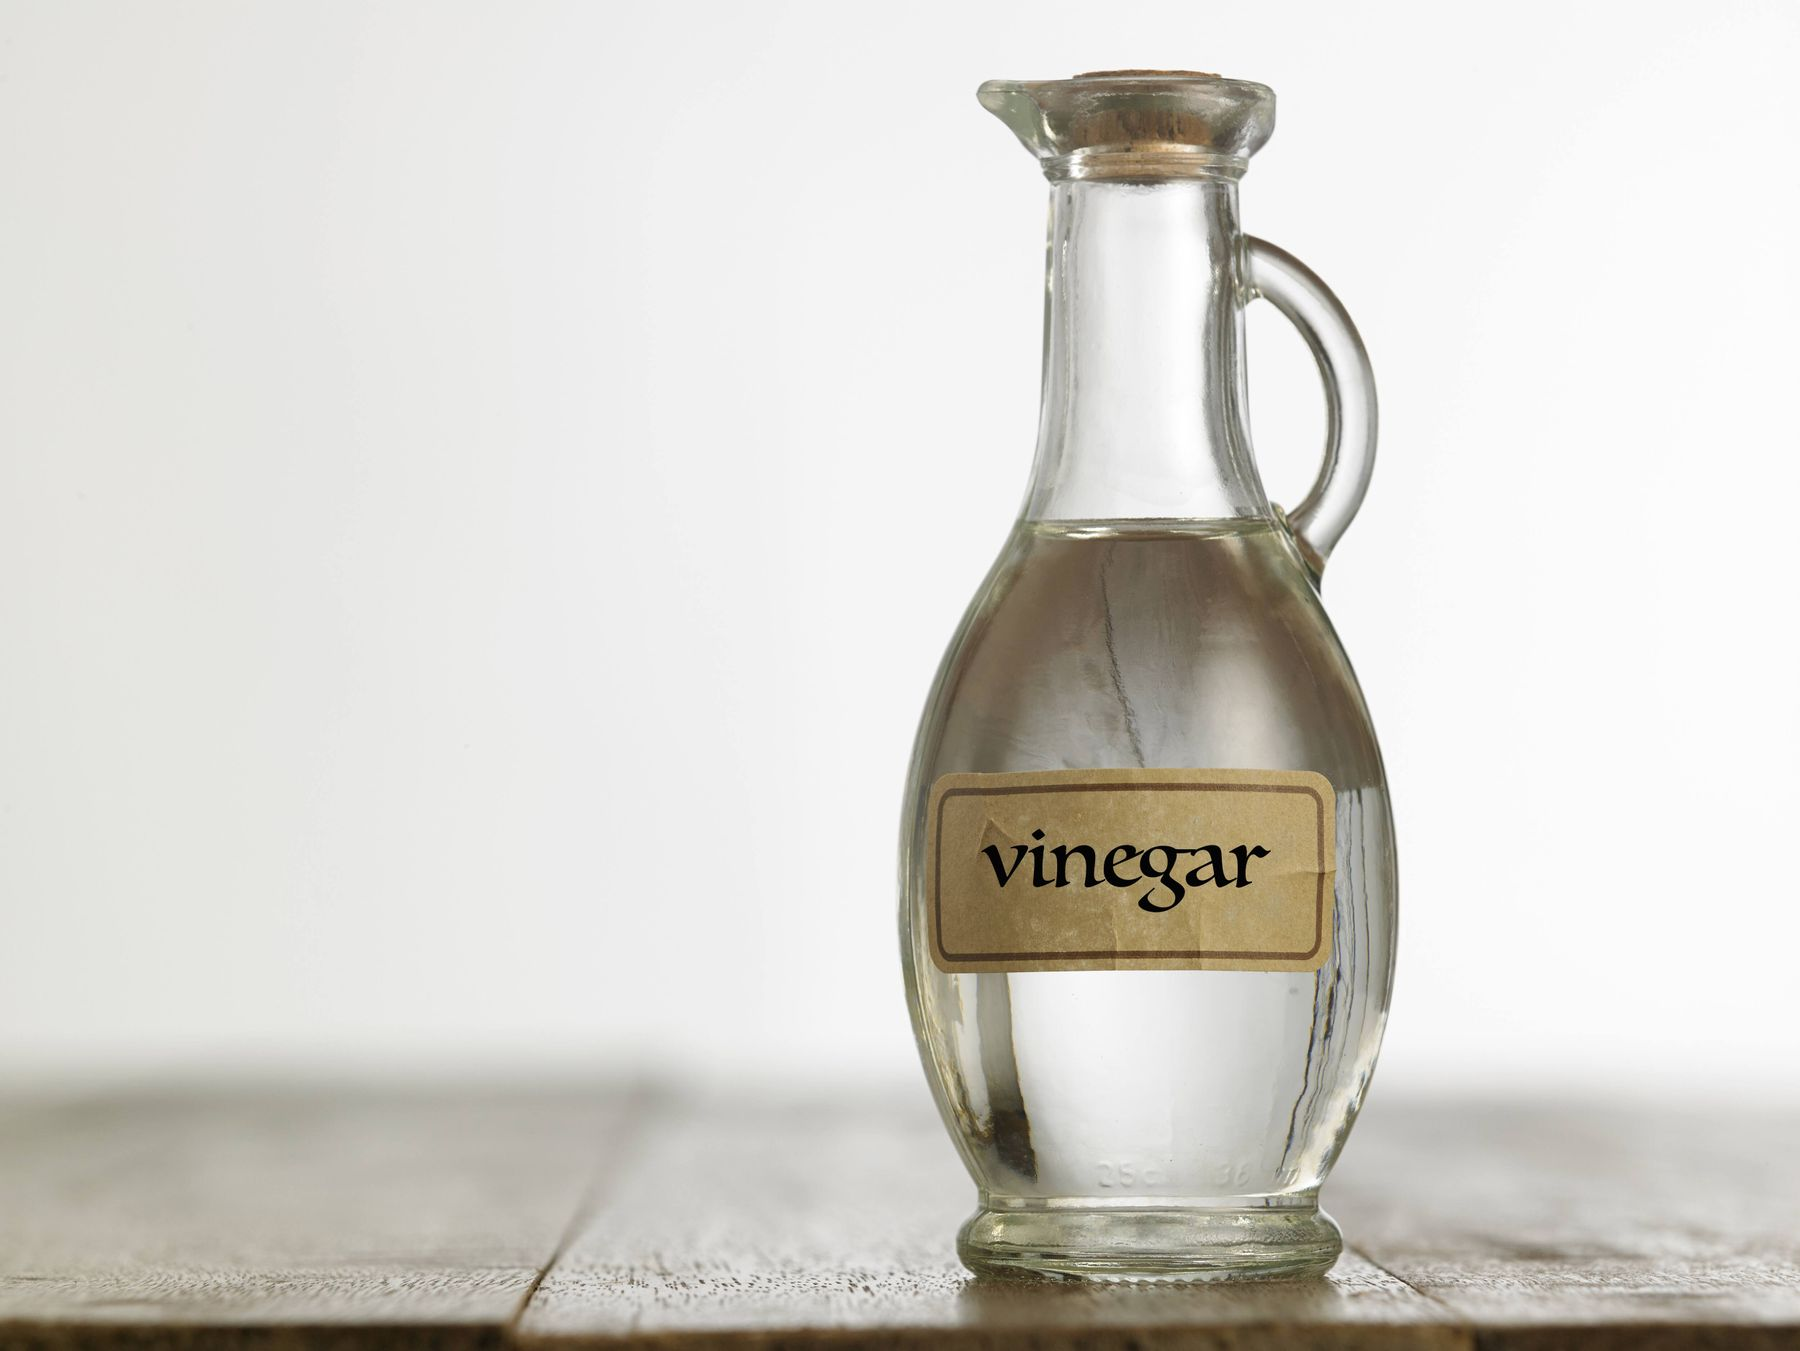 How to use Vinegar to clean oil stain